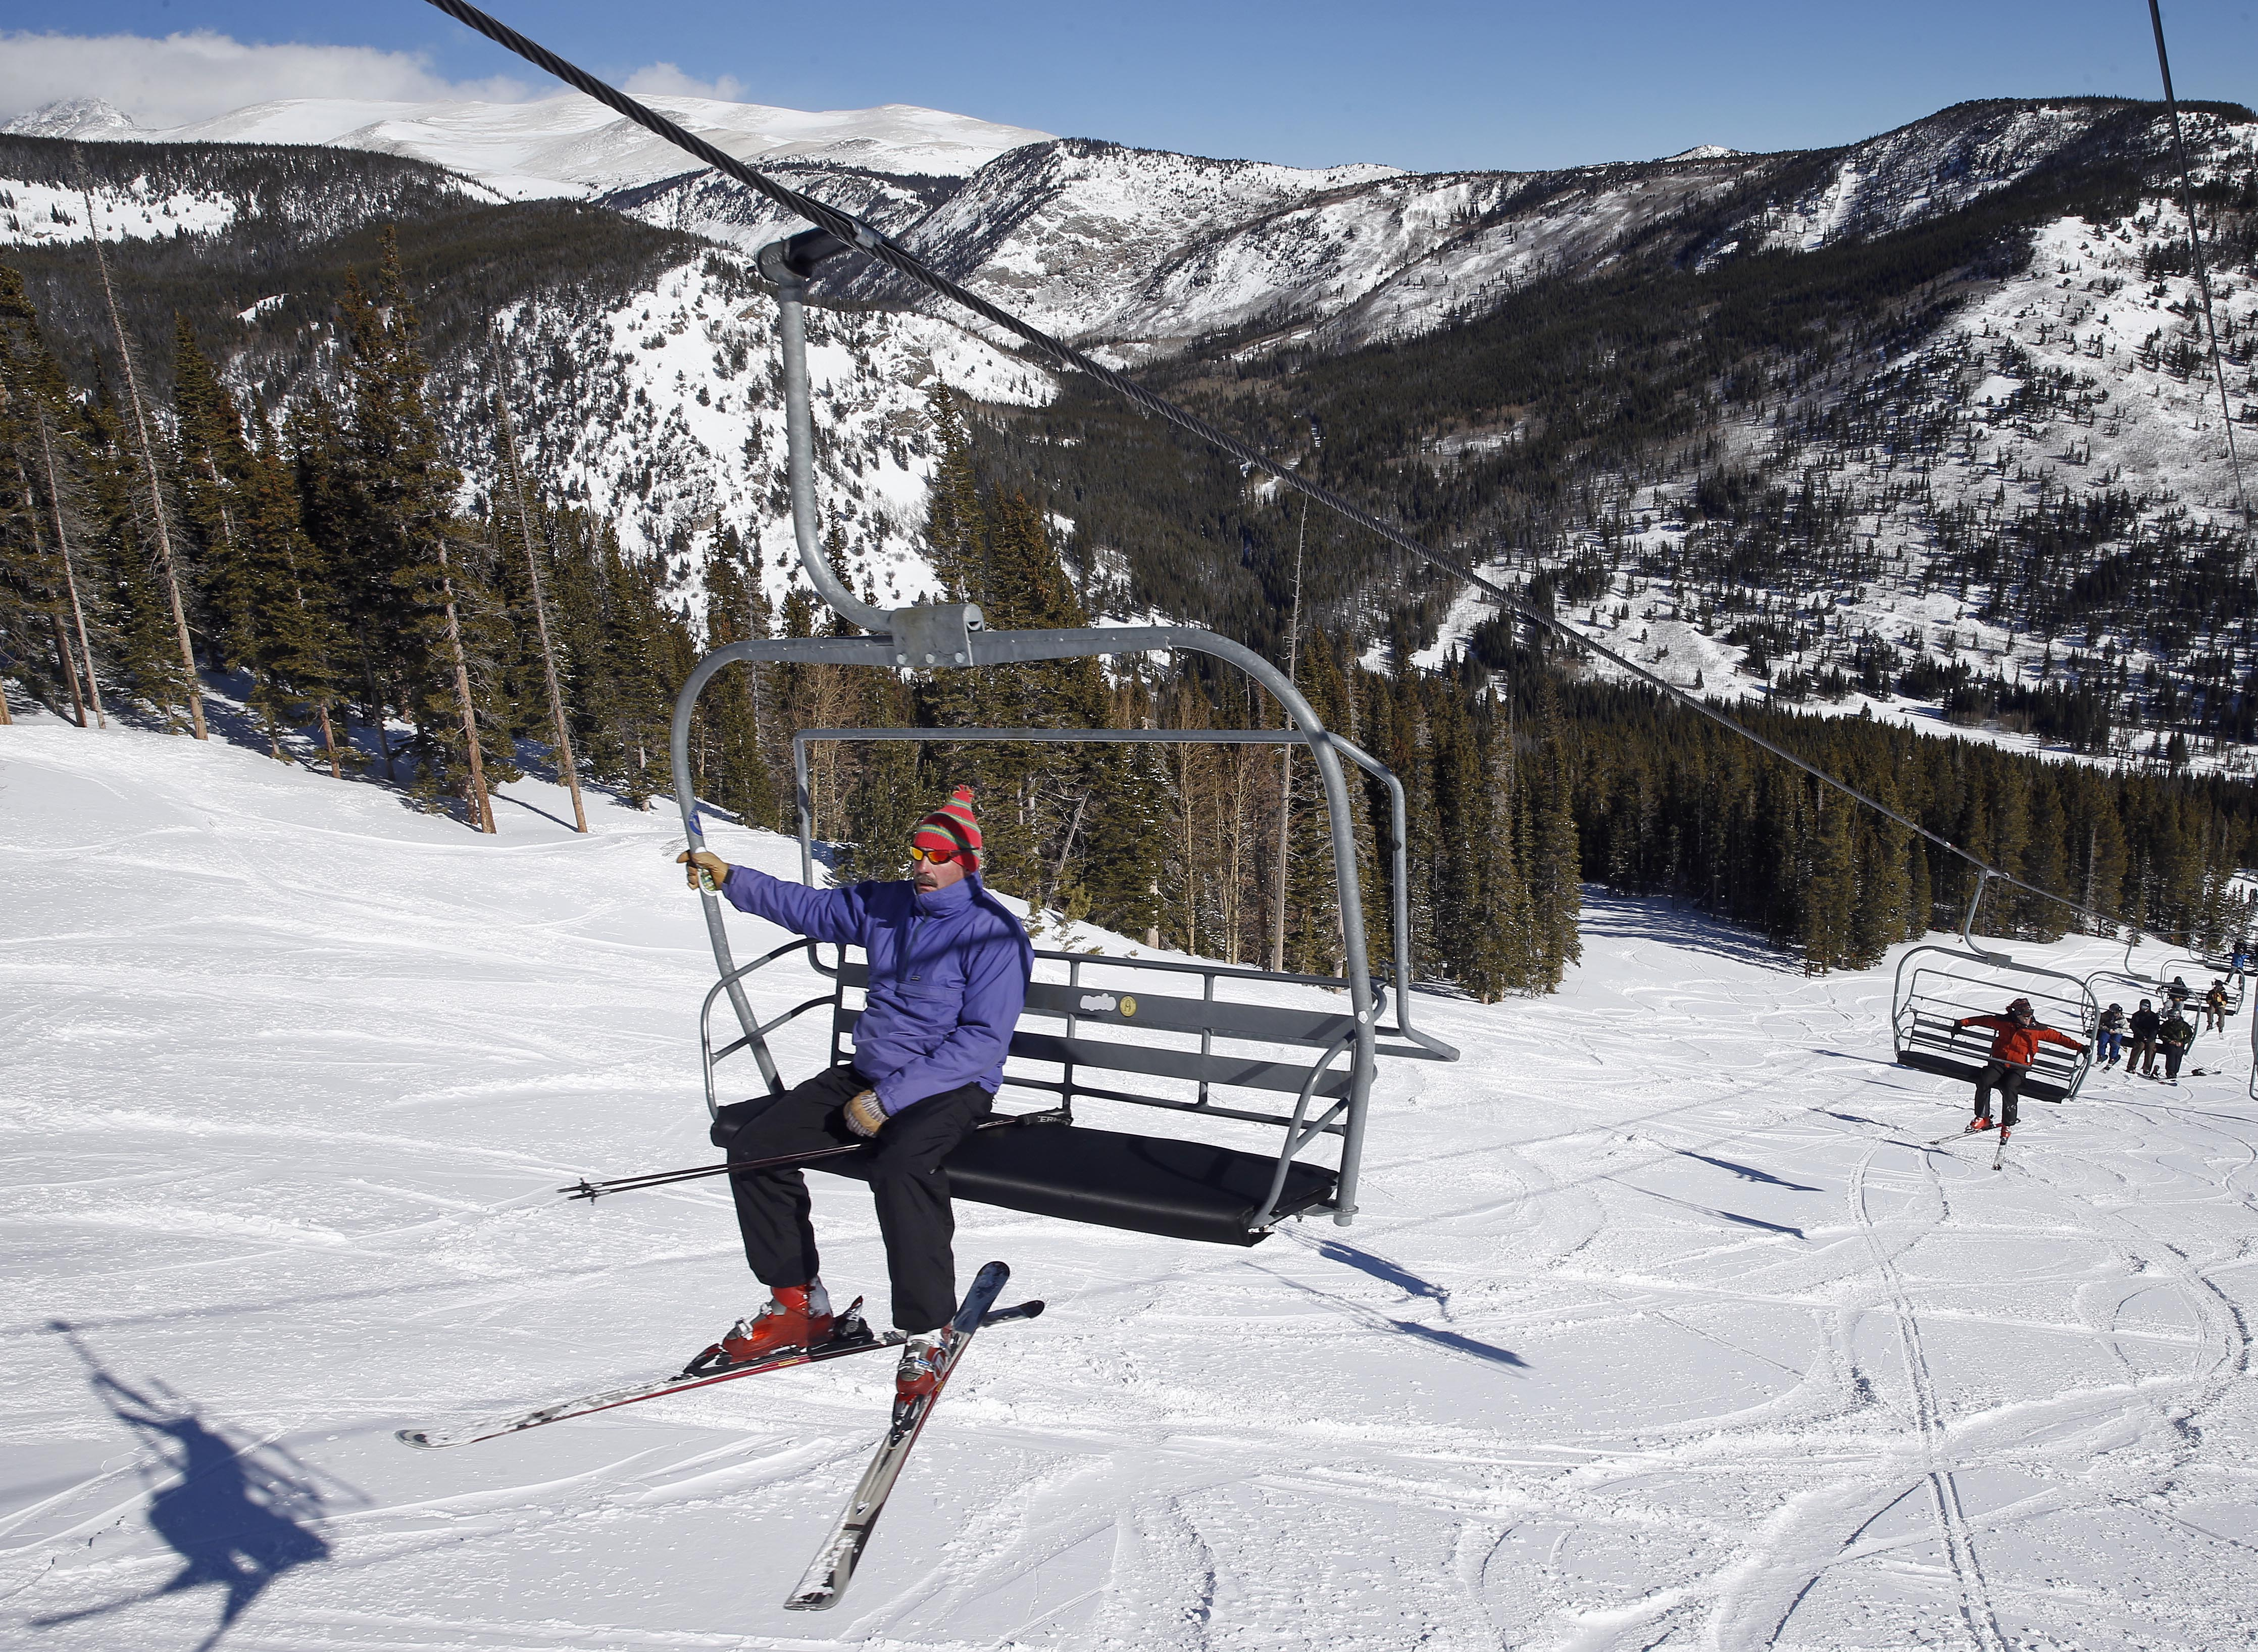 <p>A skier rides the lift on Corona Bowl, known for its extreme skiing, at Eldora Mountain Resort, near Nederland, Colo.</p>